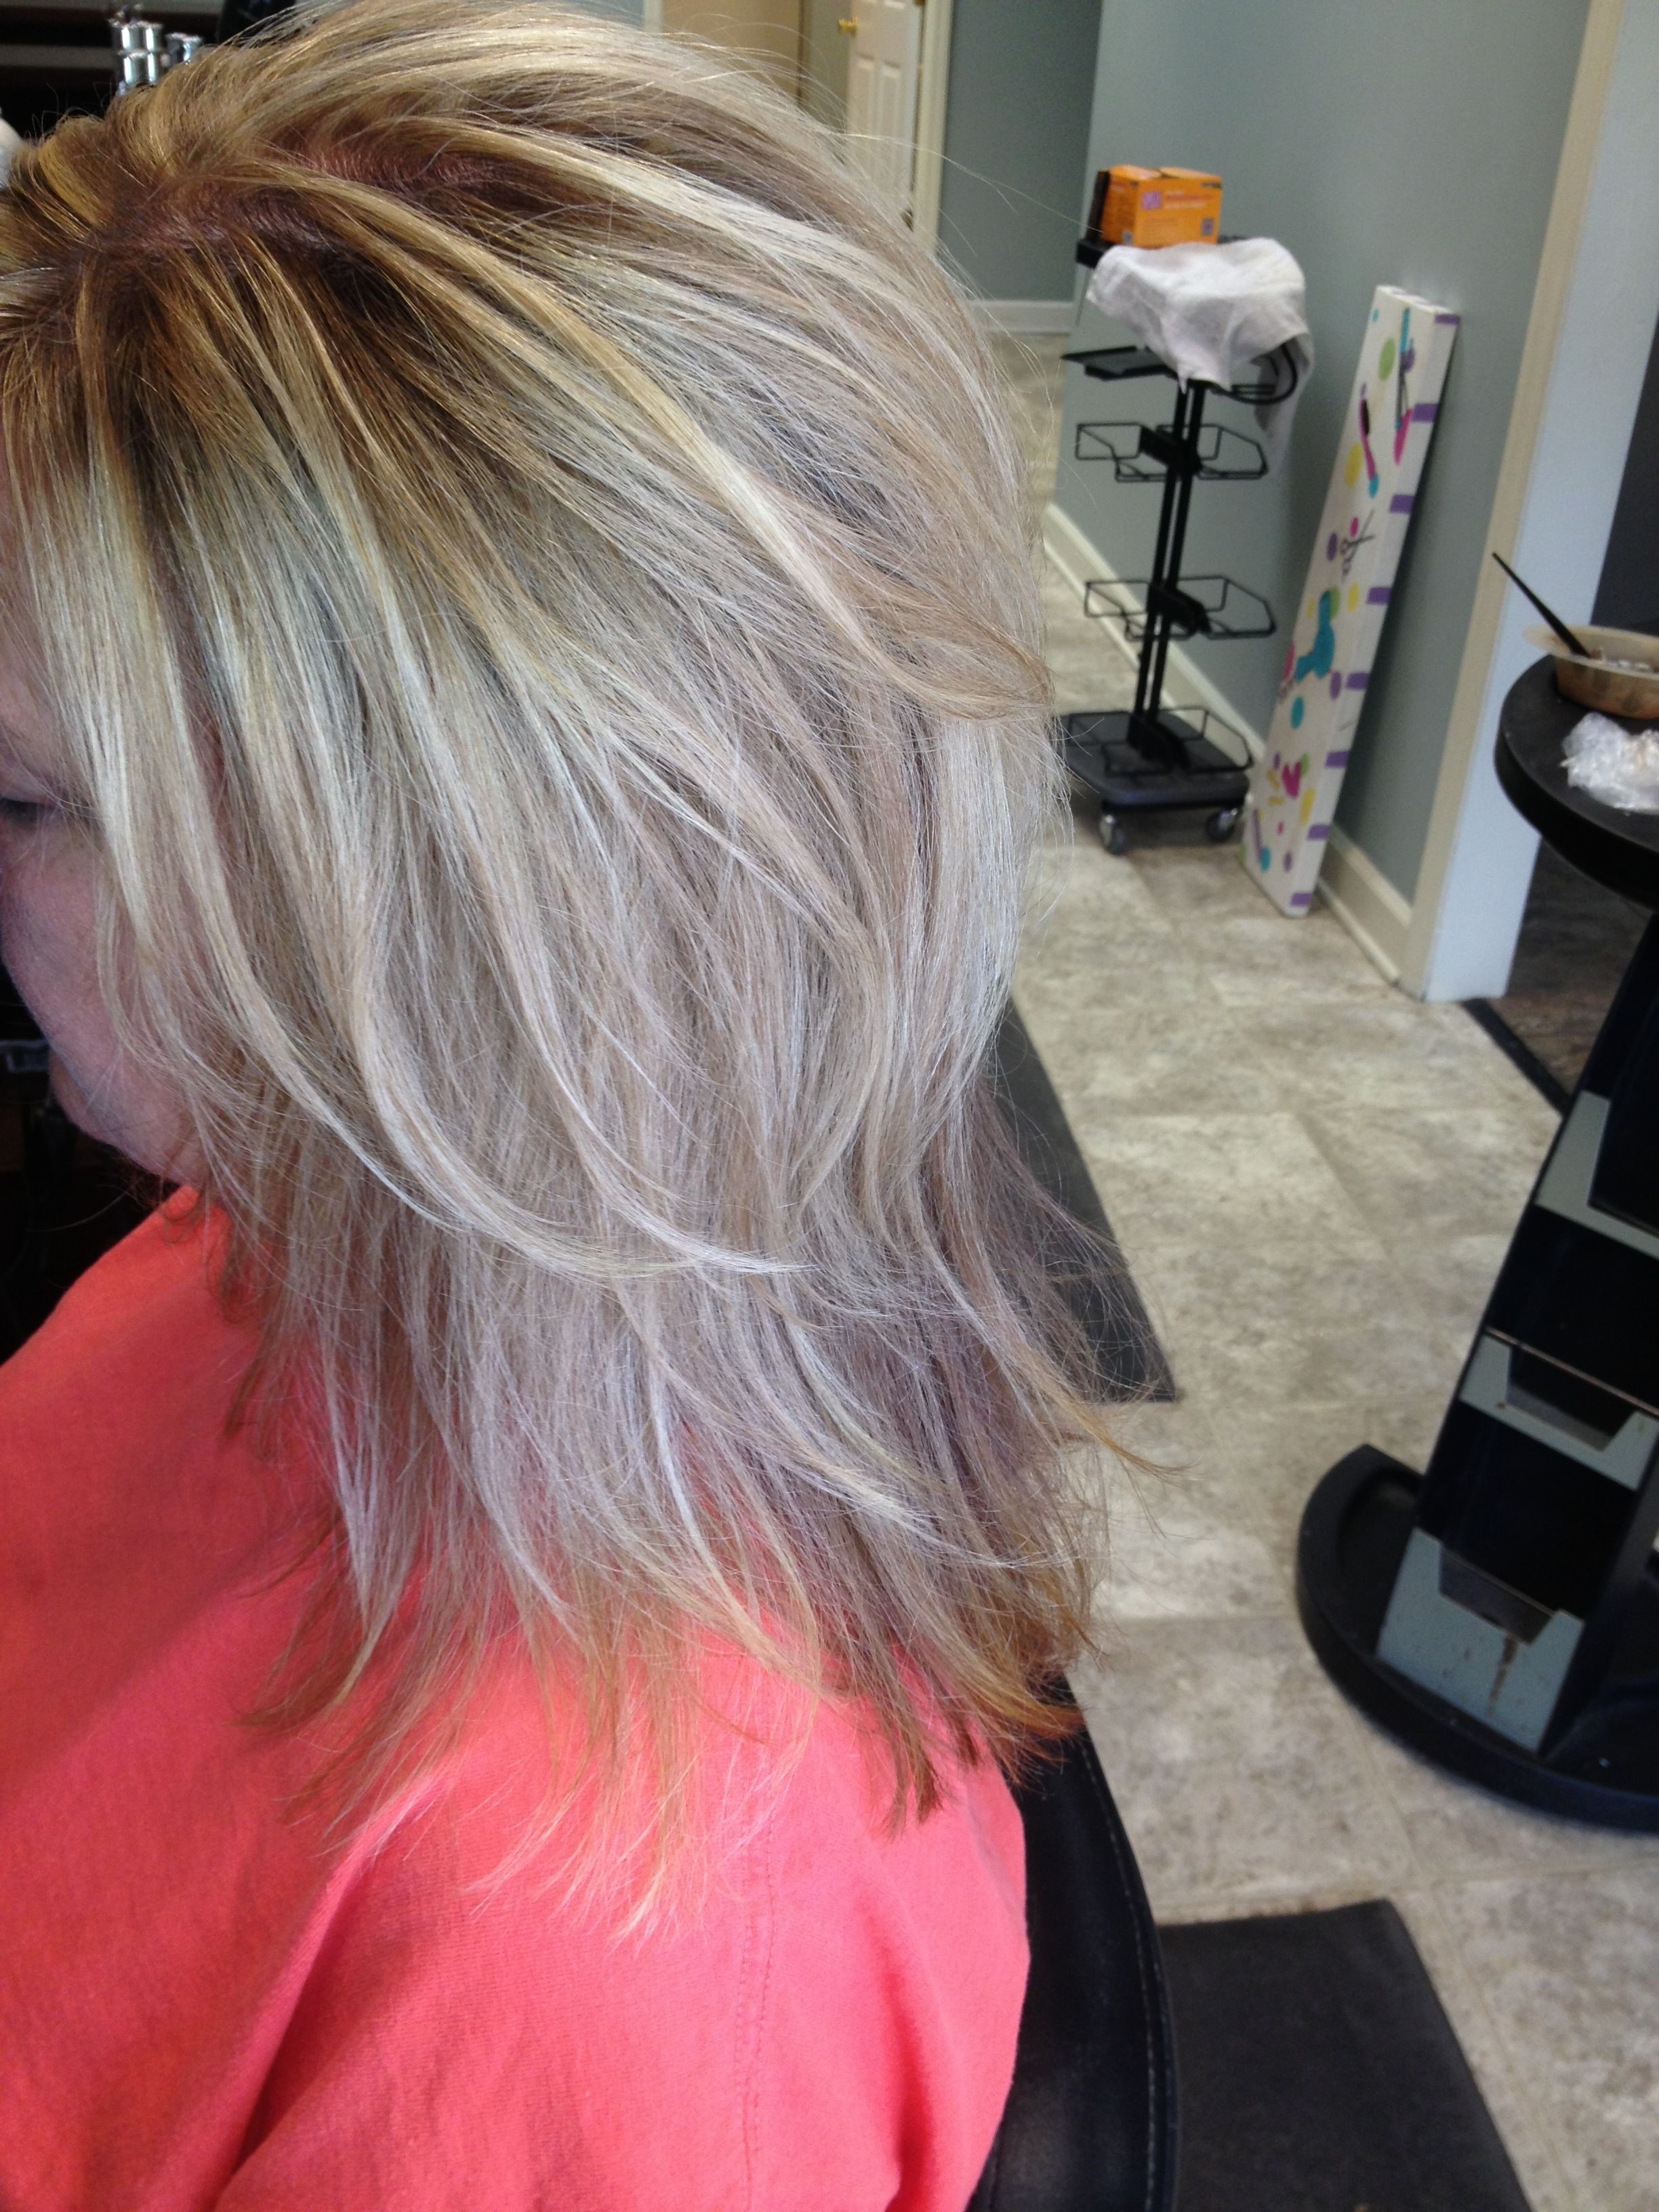 Blending gray with blonde hair hnczcyw blending gray with short grey hair with highlights betsy hyman added highlights and lowlights to lynn caulder hair pmusecretfo Choice Image